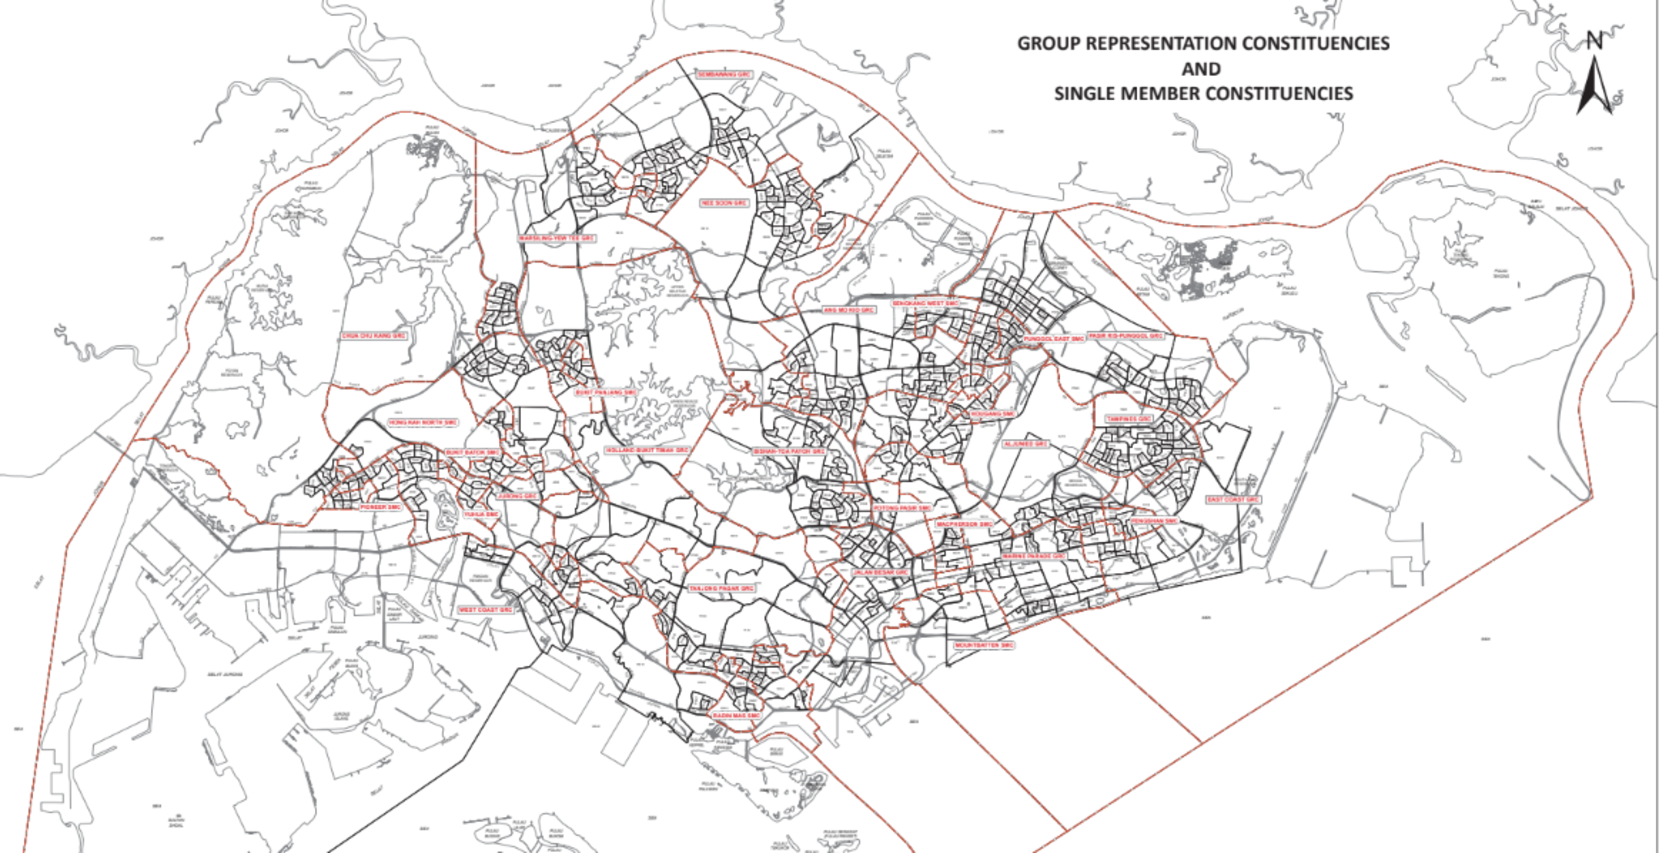 If Electoral Boundaries Make No Sense, The EBRC's Explanation Only Makes Things More Confusing